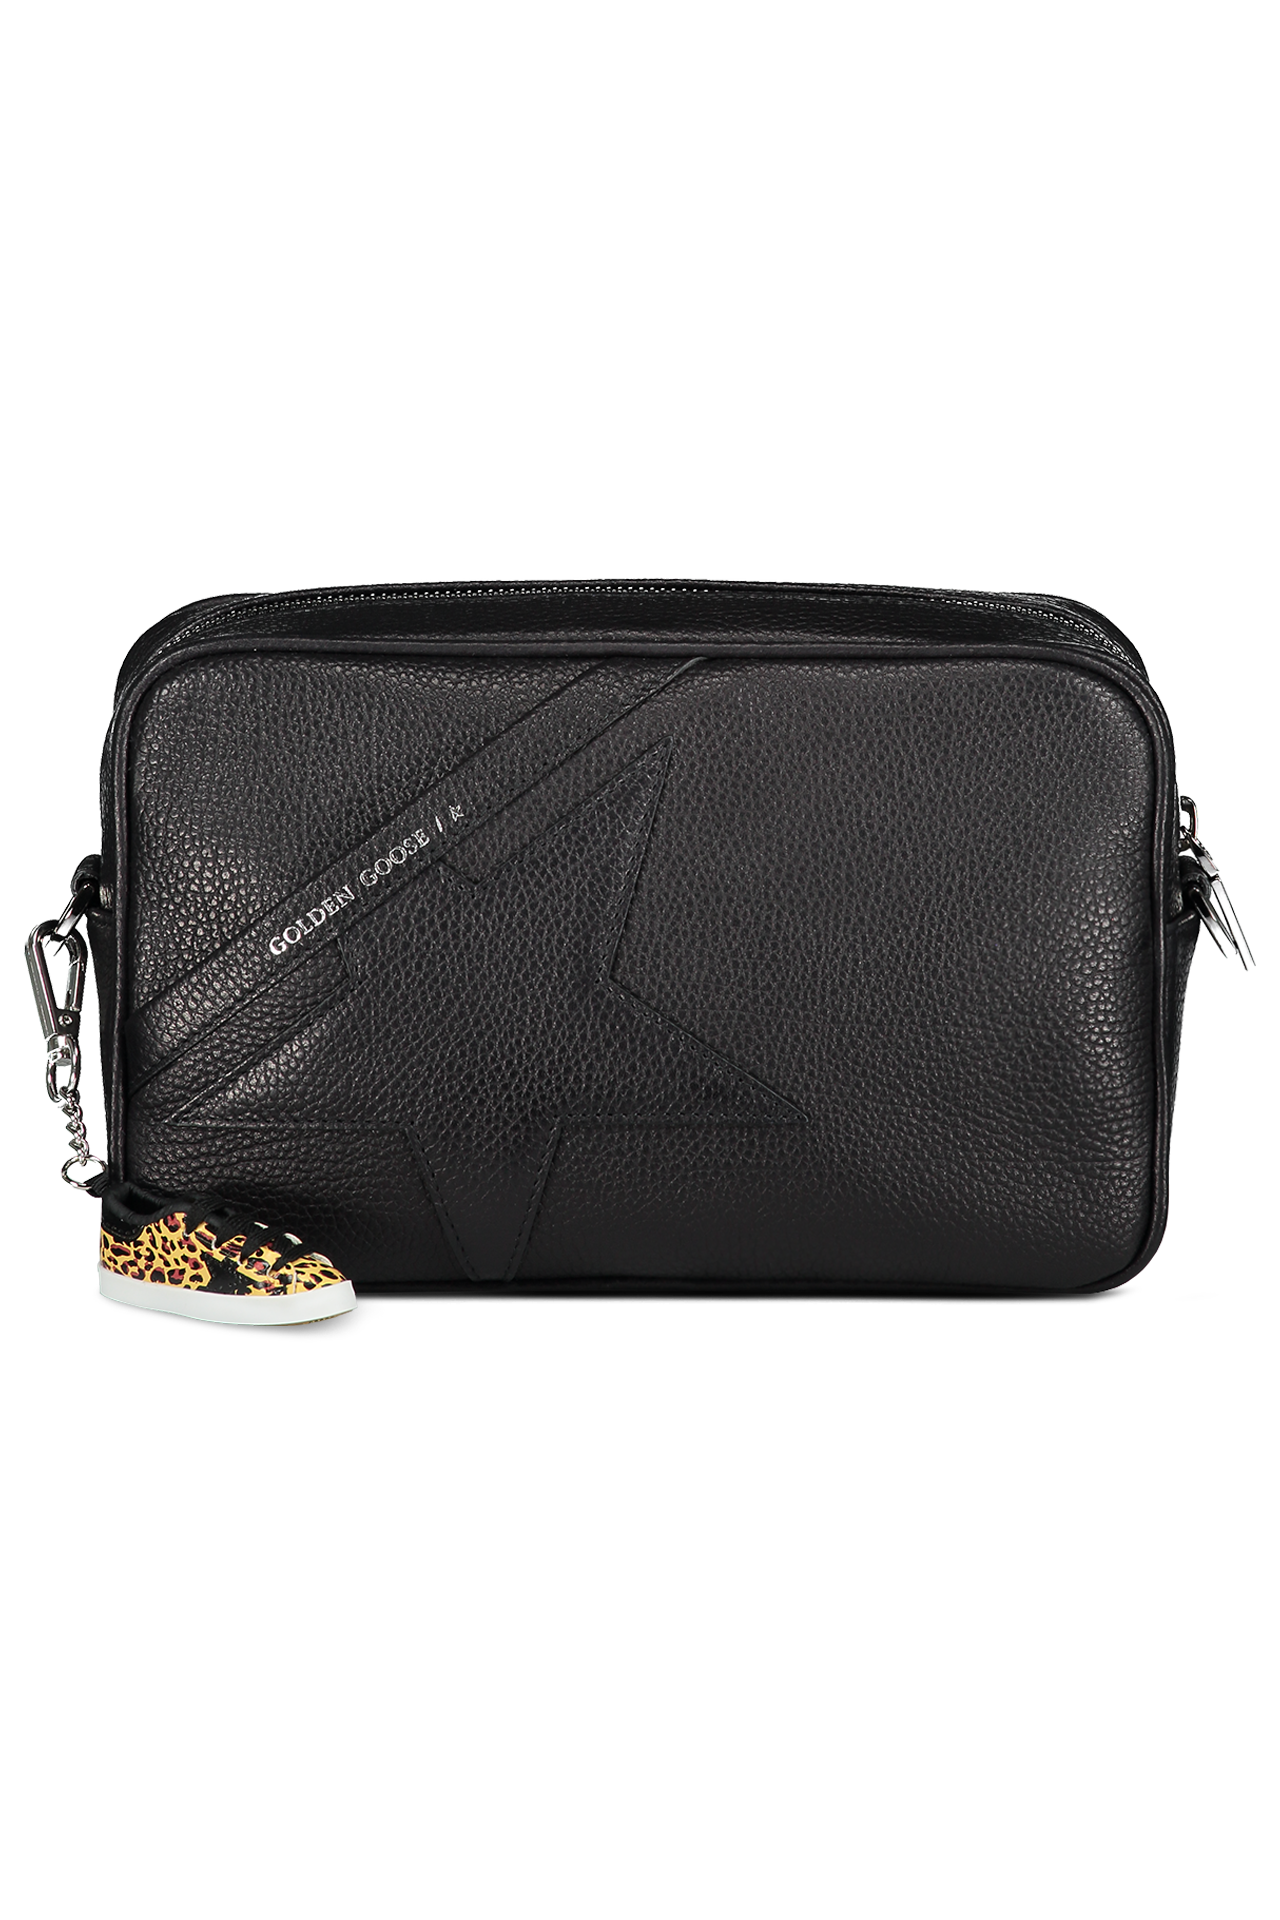 Front Image of Golden Goose Women's Star Bag Black Grained Calfskin